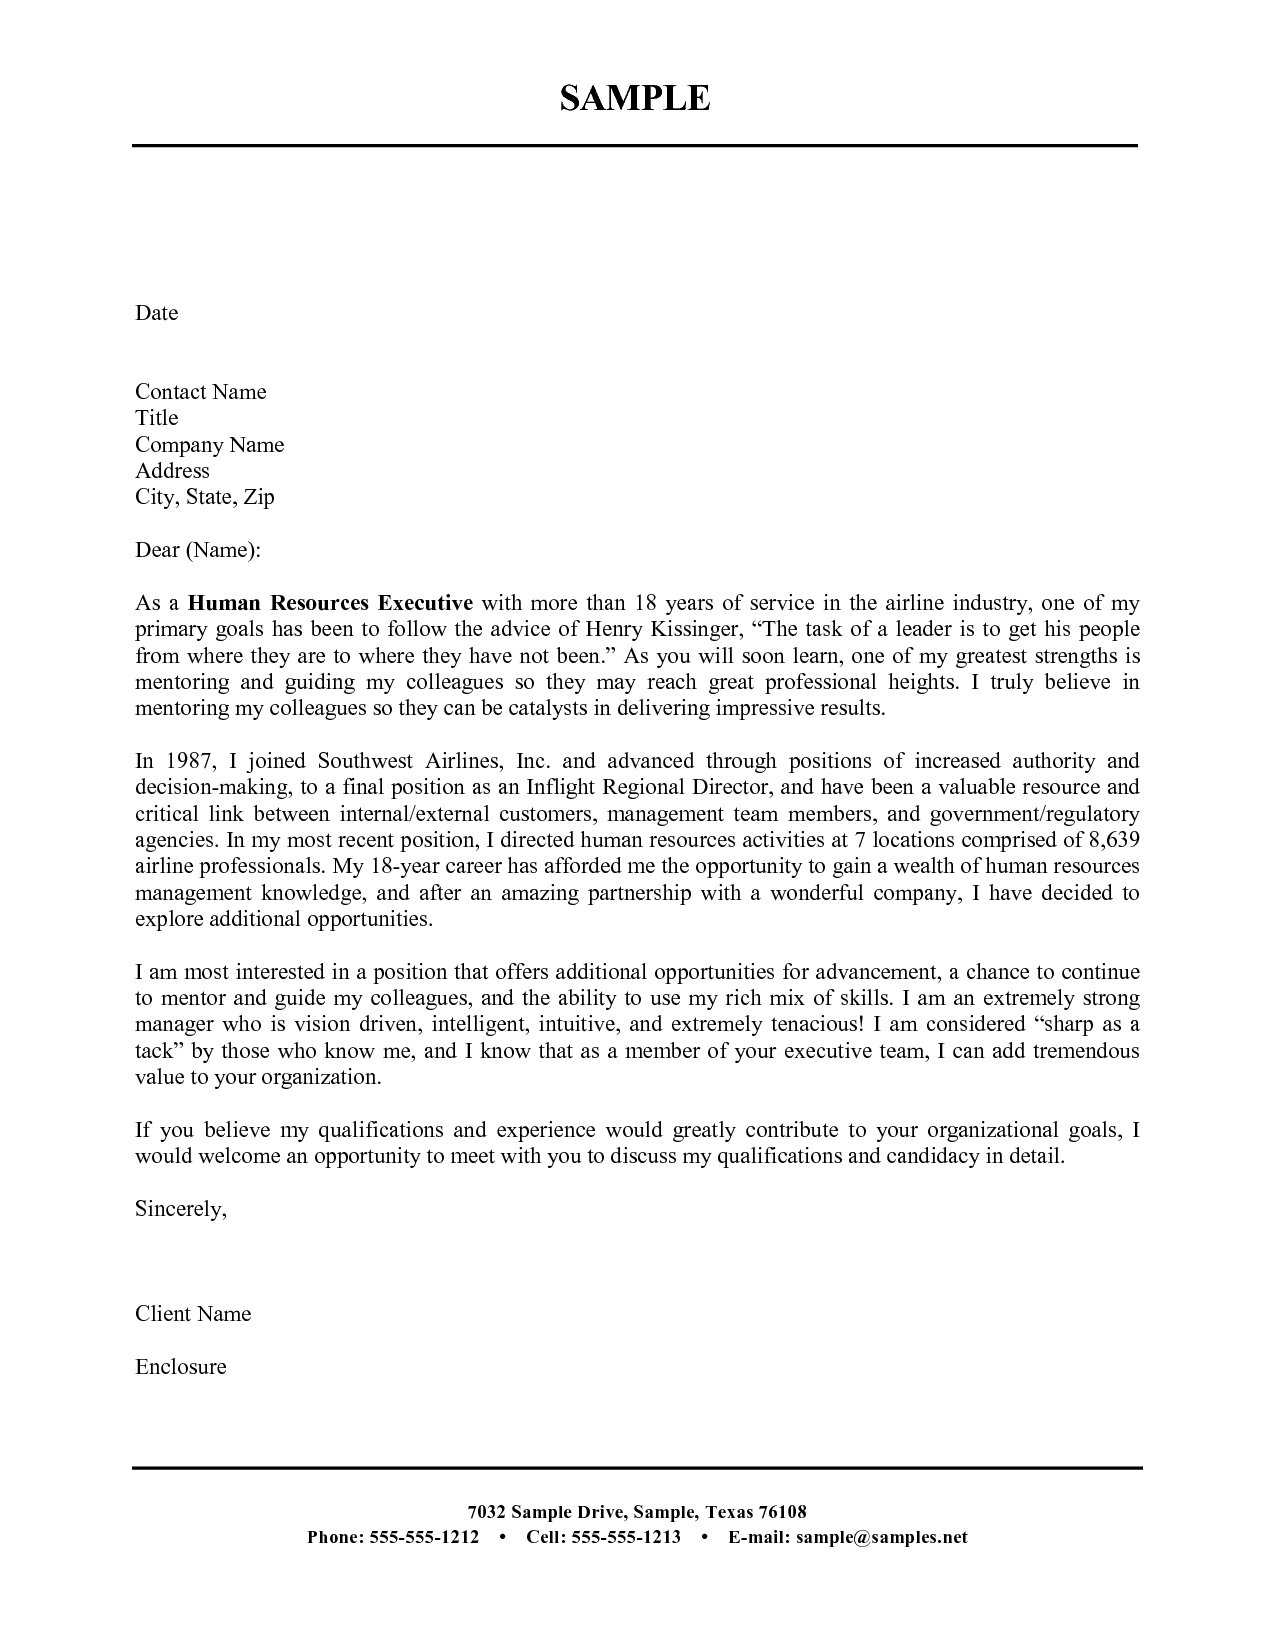 Cover Letter Template Word | Http://webdesign14/ within Letter Format Word 22584